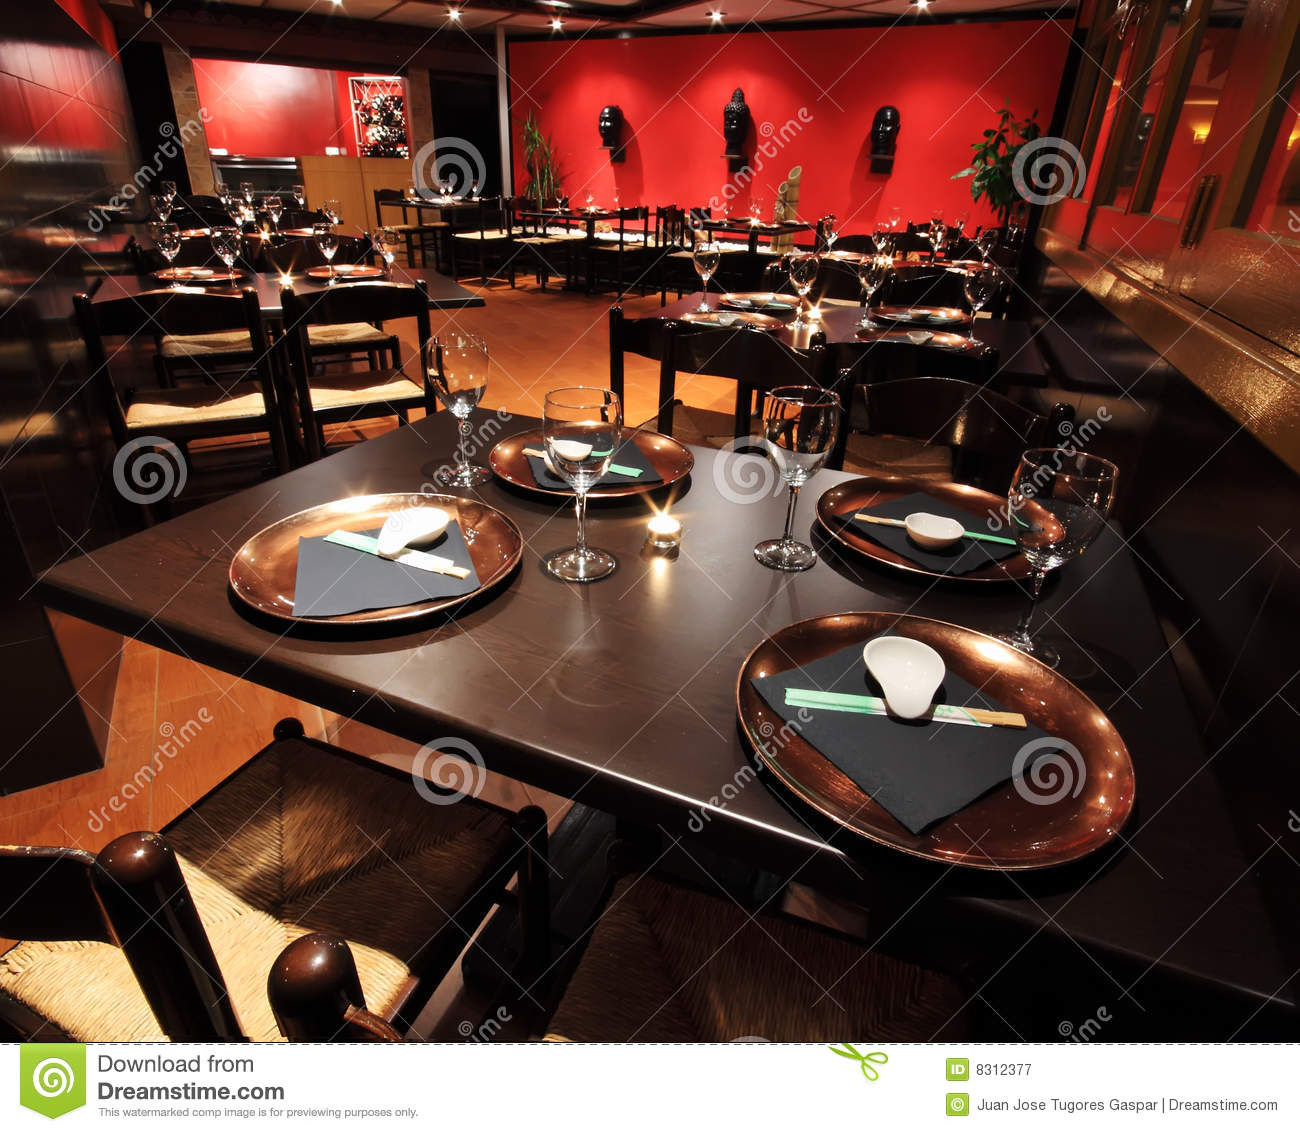 Restaurant interiors royalty free stock photography